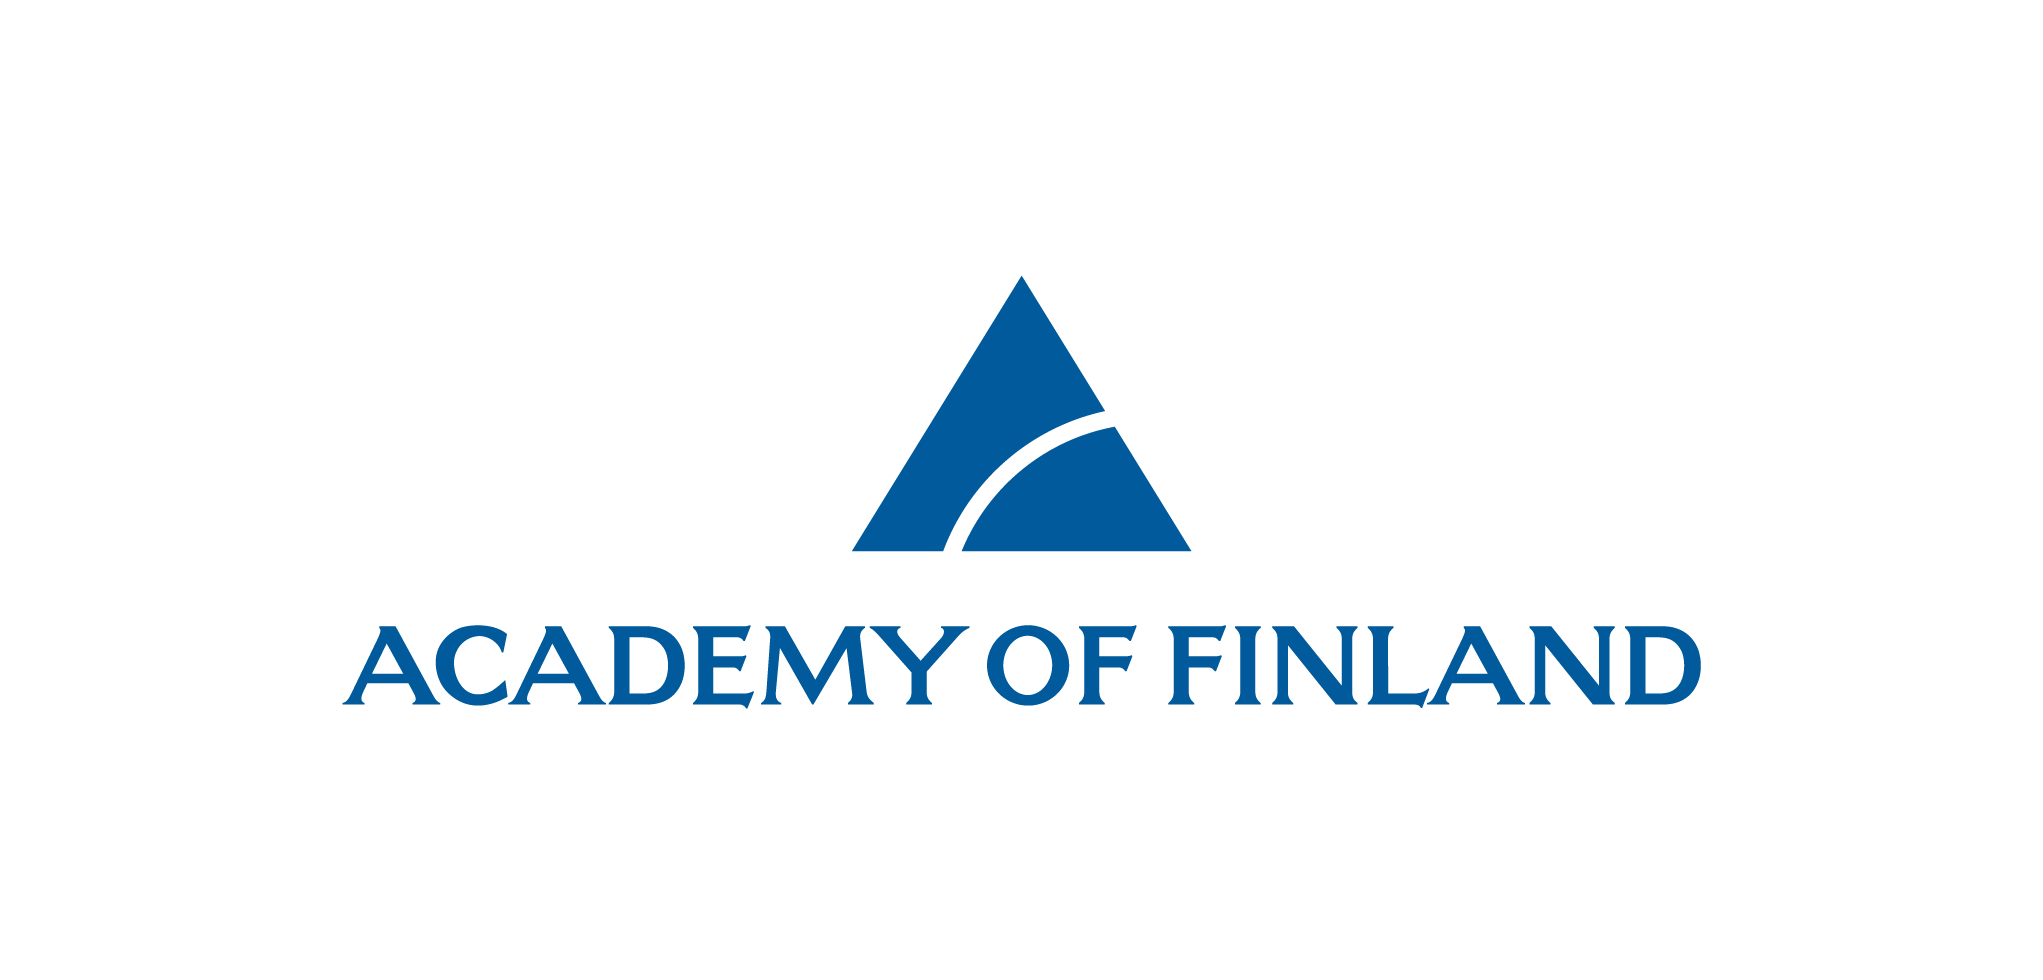 Academy of Finland Research Fellow awarded to Miguel Caro